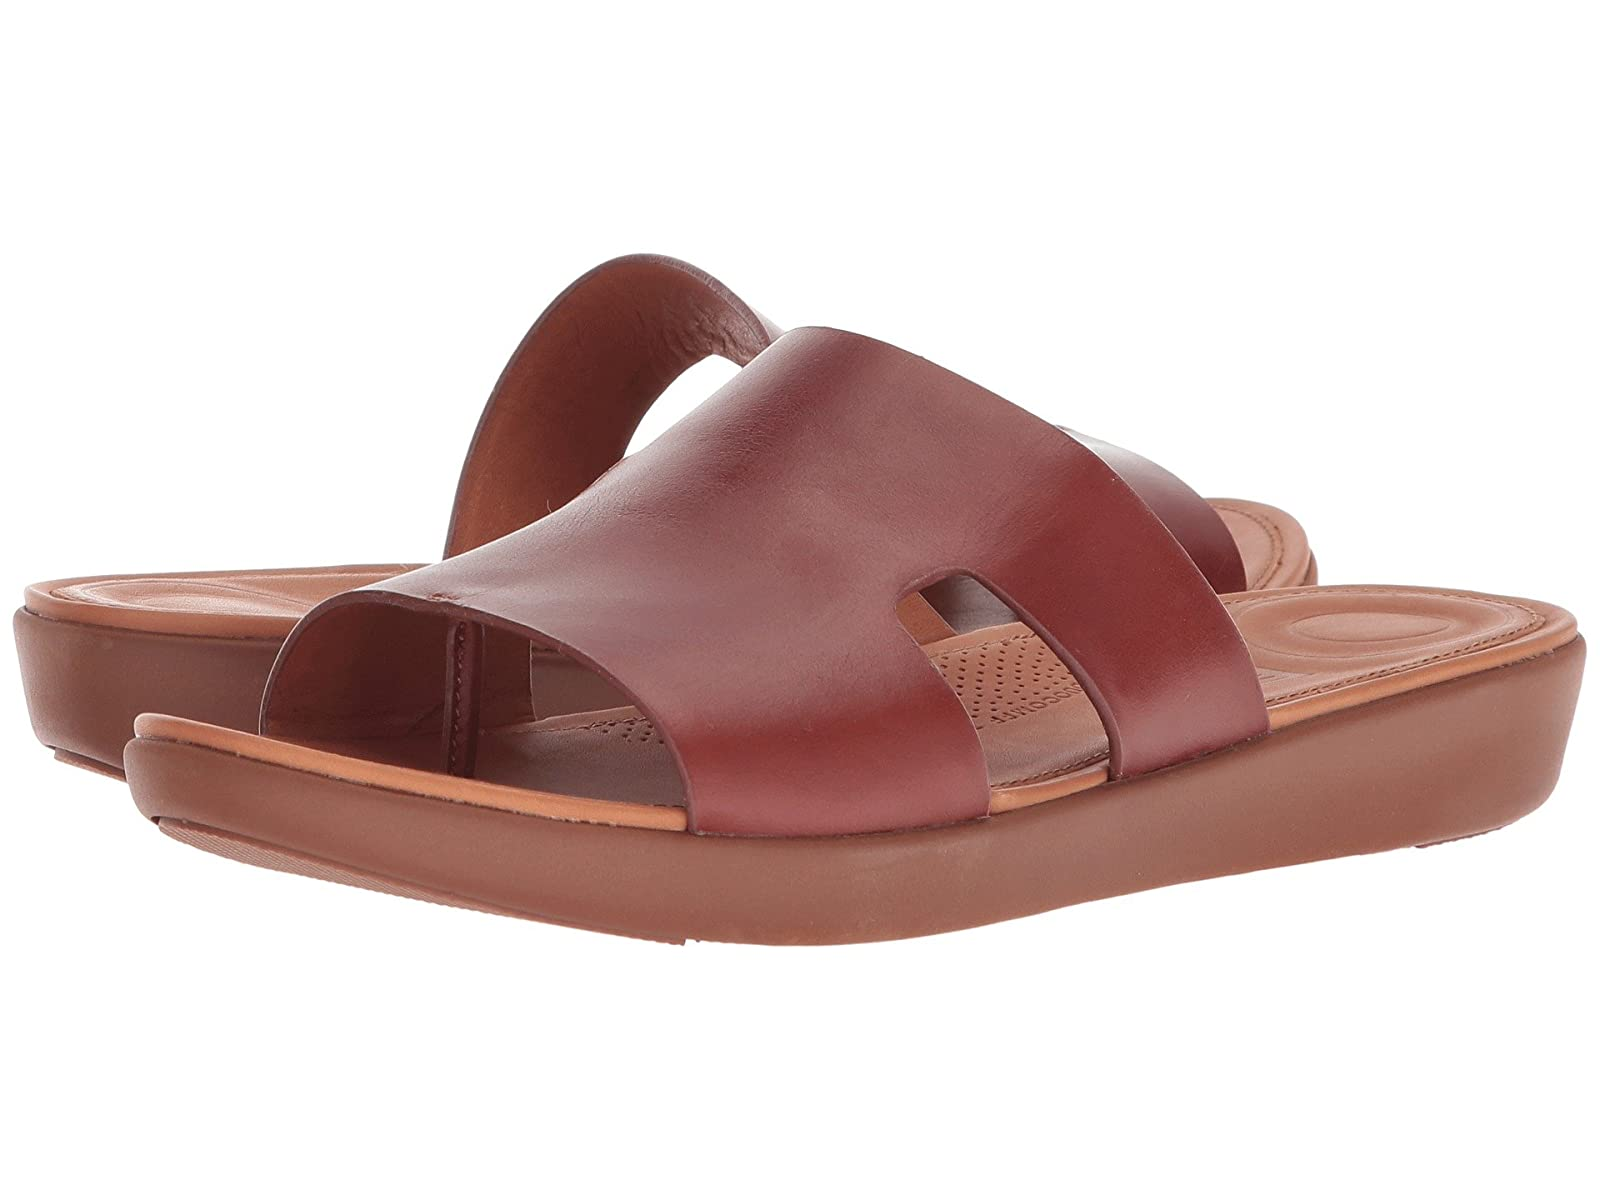 FitFlop H-Bar Slide SandalsCheap and distinctive eye-catching shoes